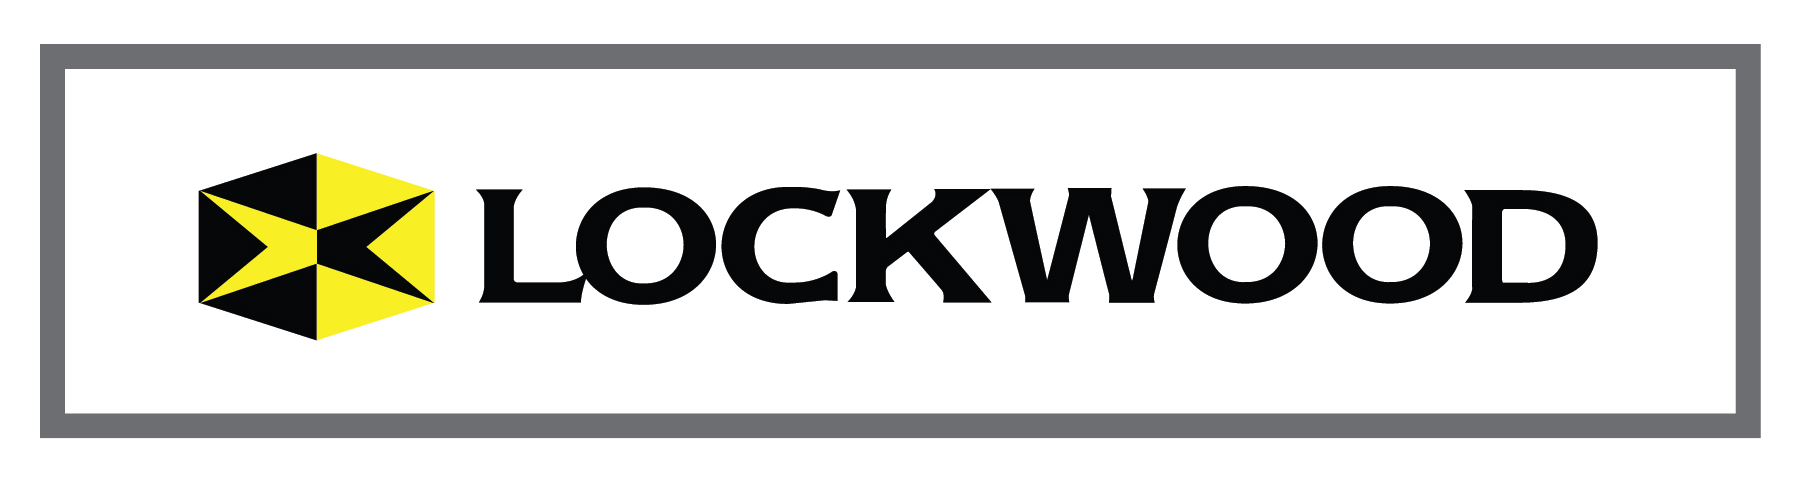 ZE-Home-Lockwood-Homes-Builders-Logo.png